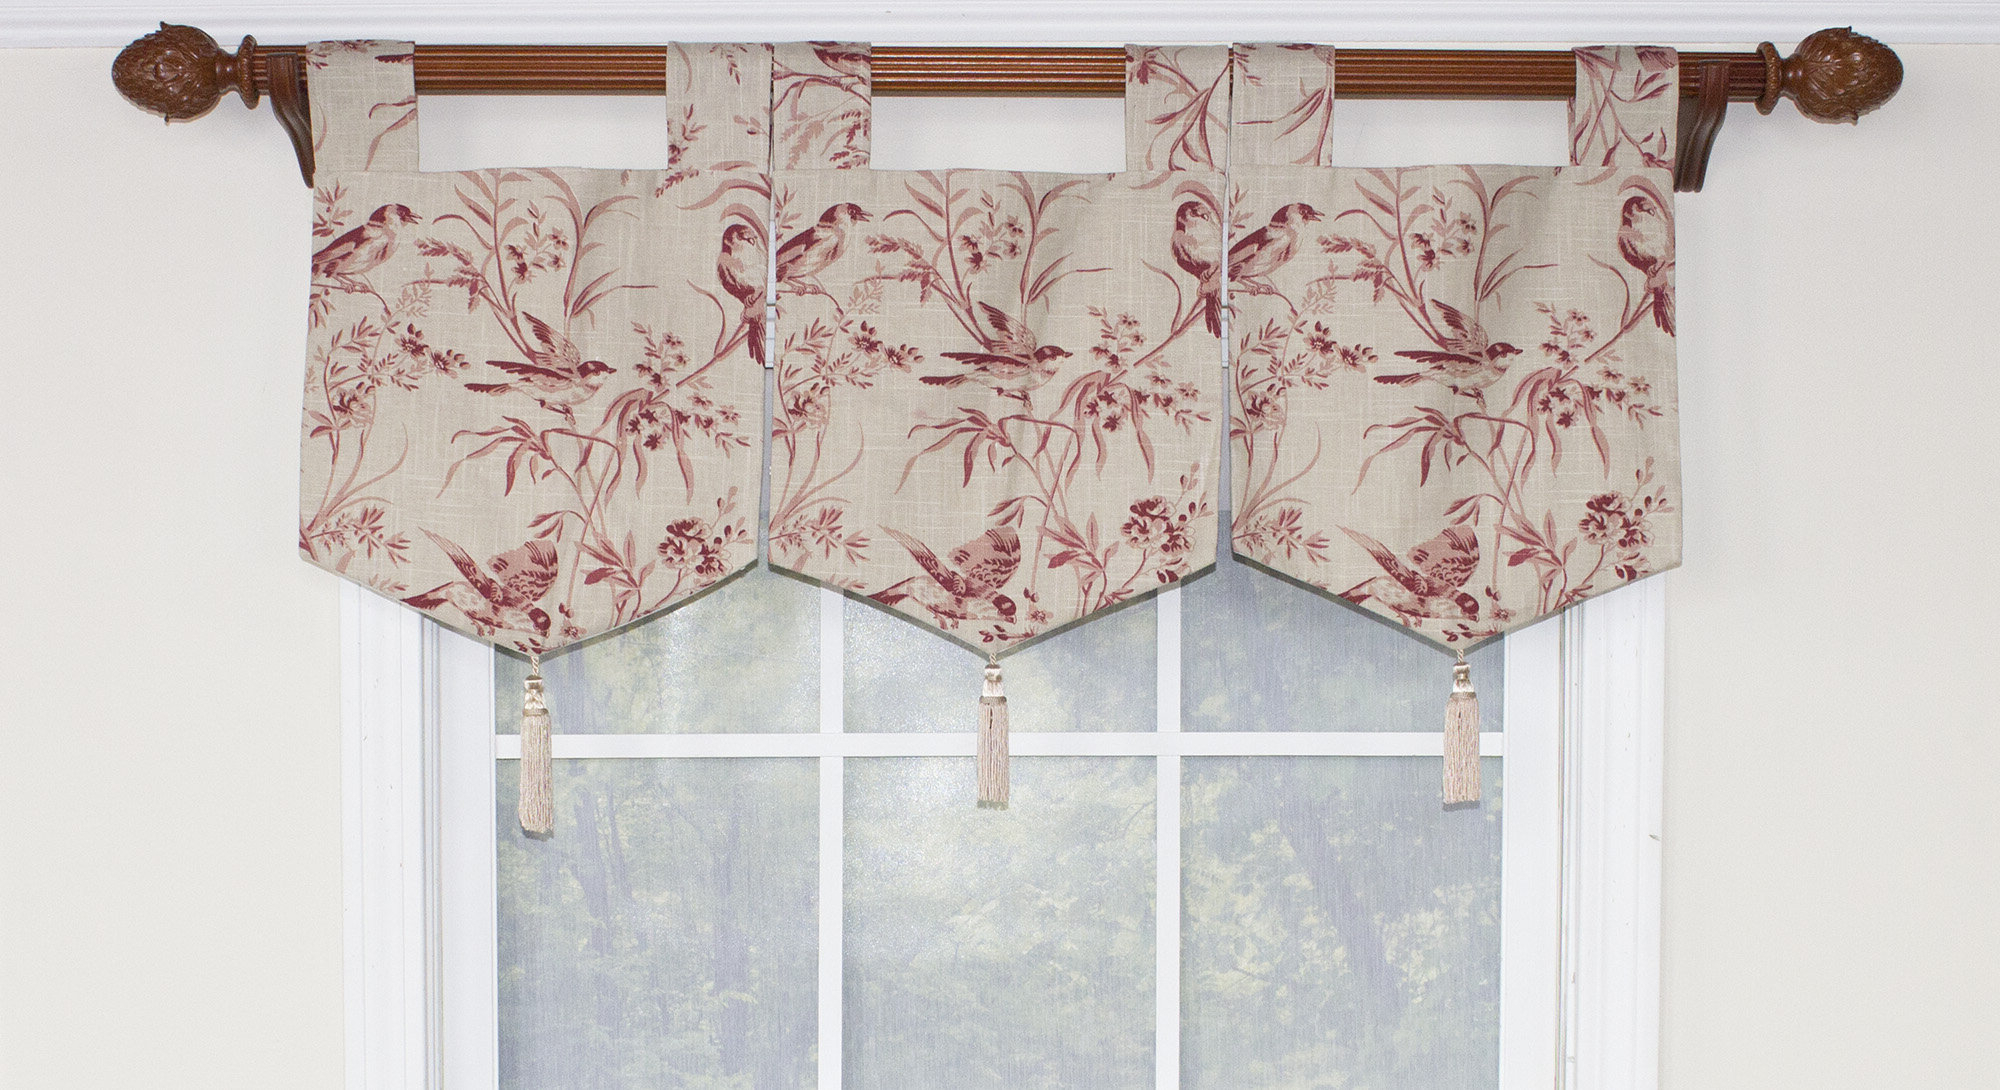 Popular Weist Aviary Toile Banner Curtain Valance Pertaining To Aviary Window Curtains (View 13 of 20)